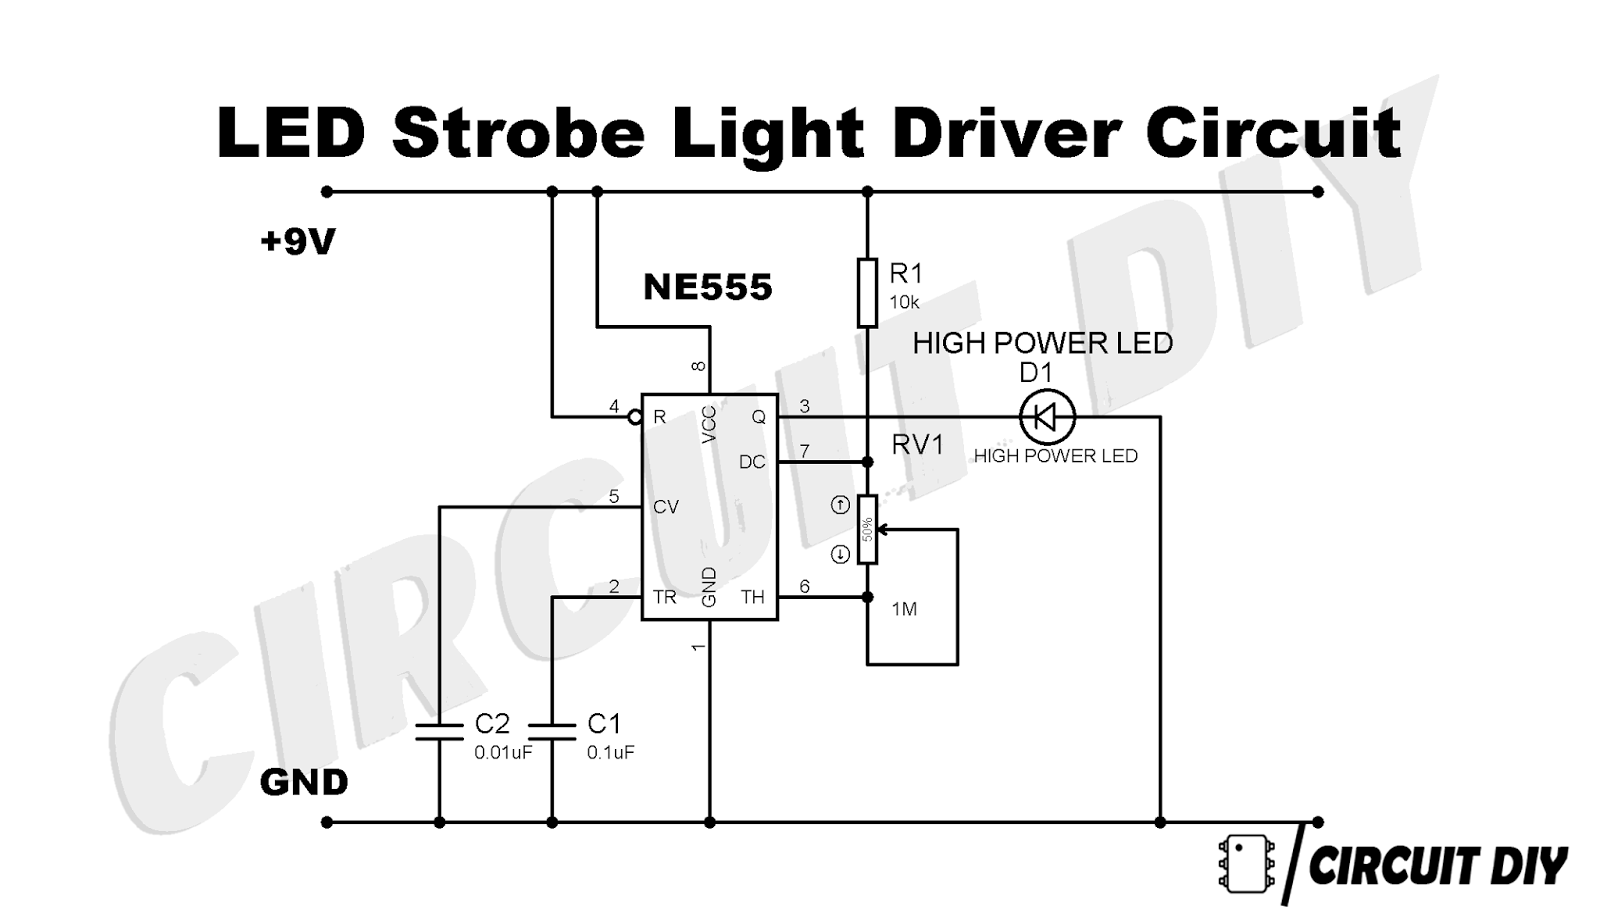 led strobe light circuit diagram